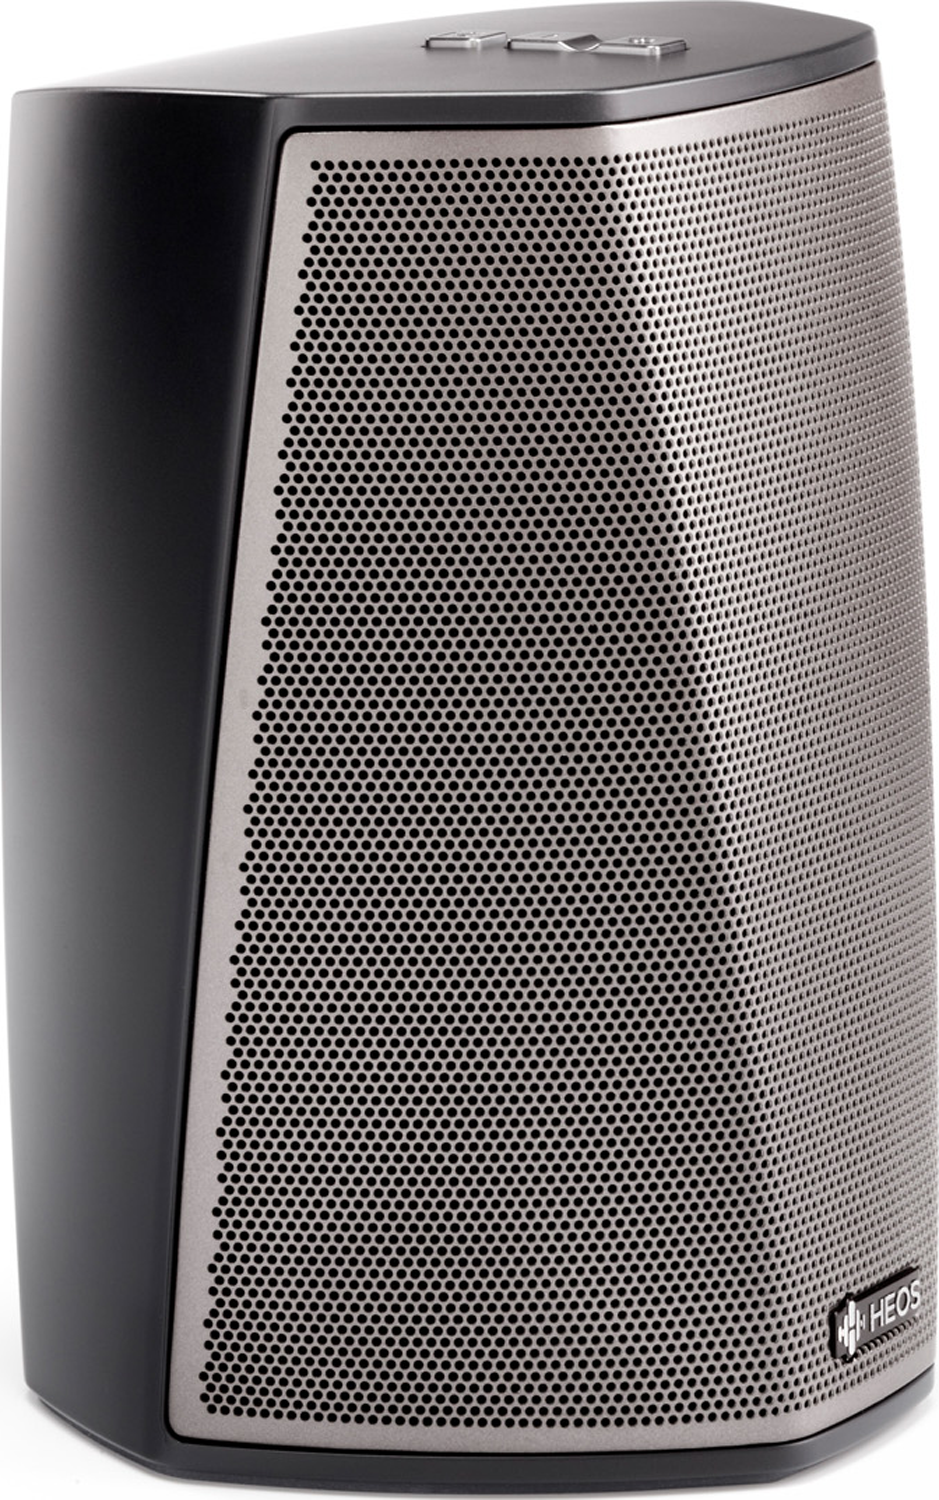 HEOS 1 Compact WiFi & Bluetooth Speaker Black HS1